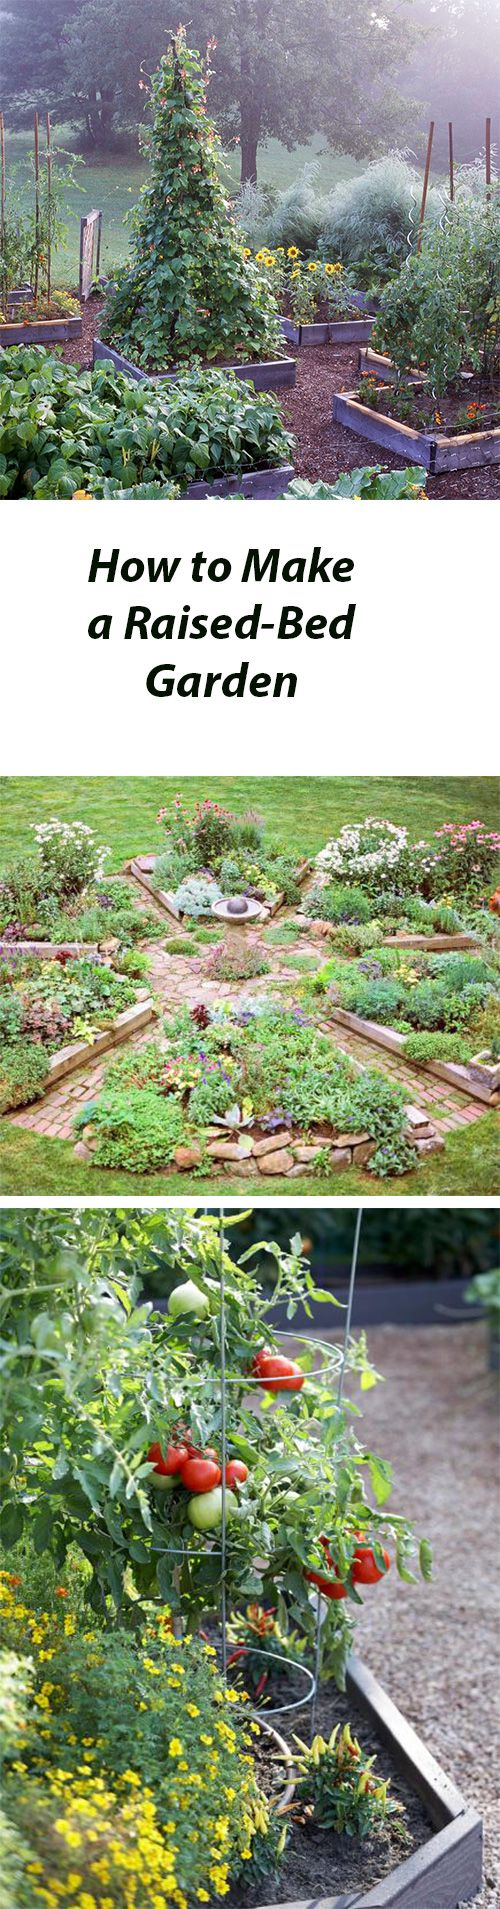 Tips for building a great raised-bed garden for flowers or vegetables: http://www.midwestliving.com/garden/ideas/how-to-make-a-raised-bed-garden/